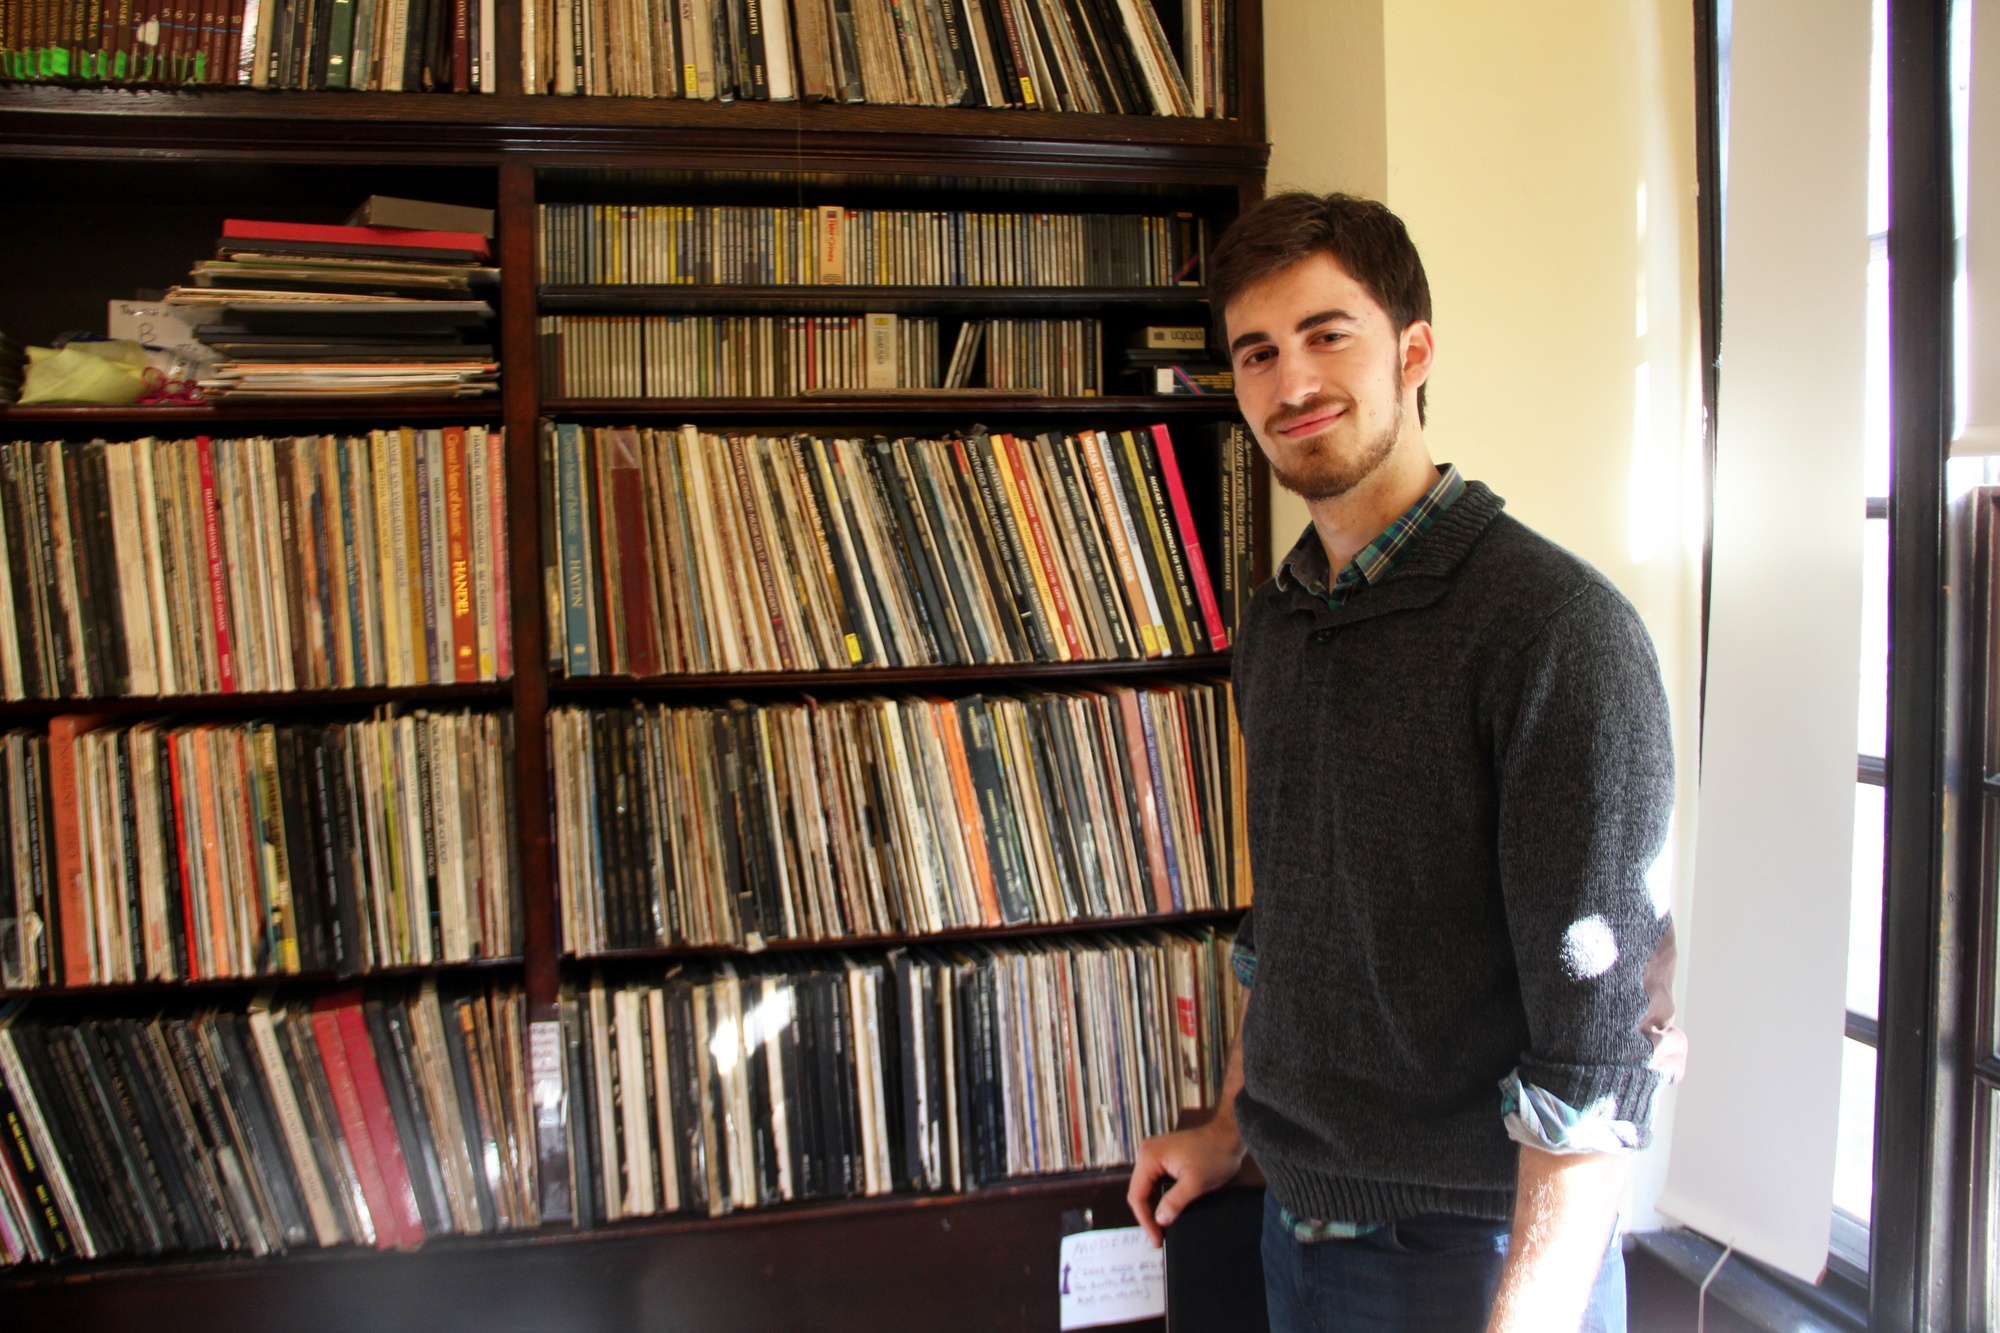 A resident of Eliot House and the house's official librarian, Tim runs the record room, the recording studio, and the Eliot bike-sharing program. Here, he stands in the record room after putting on Chopin's Nocturne No. 1.